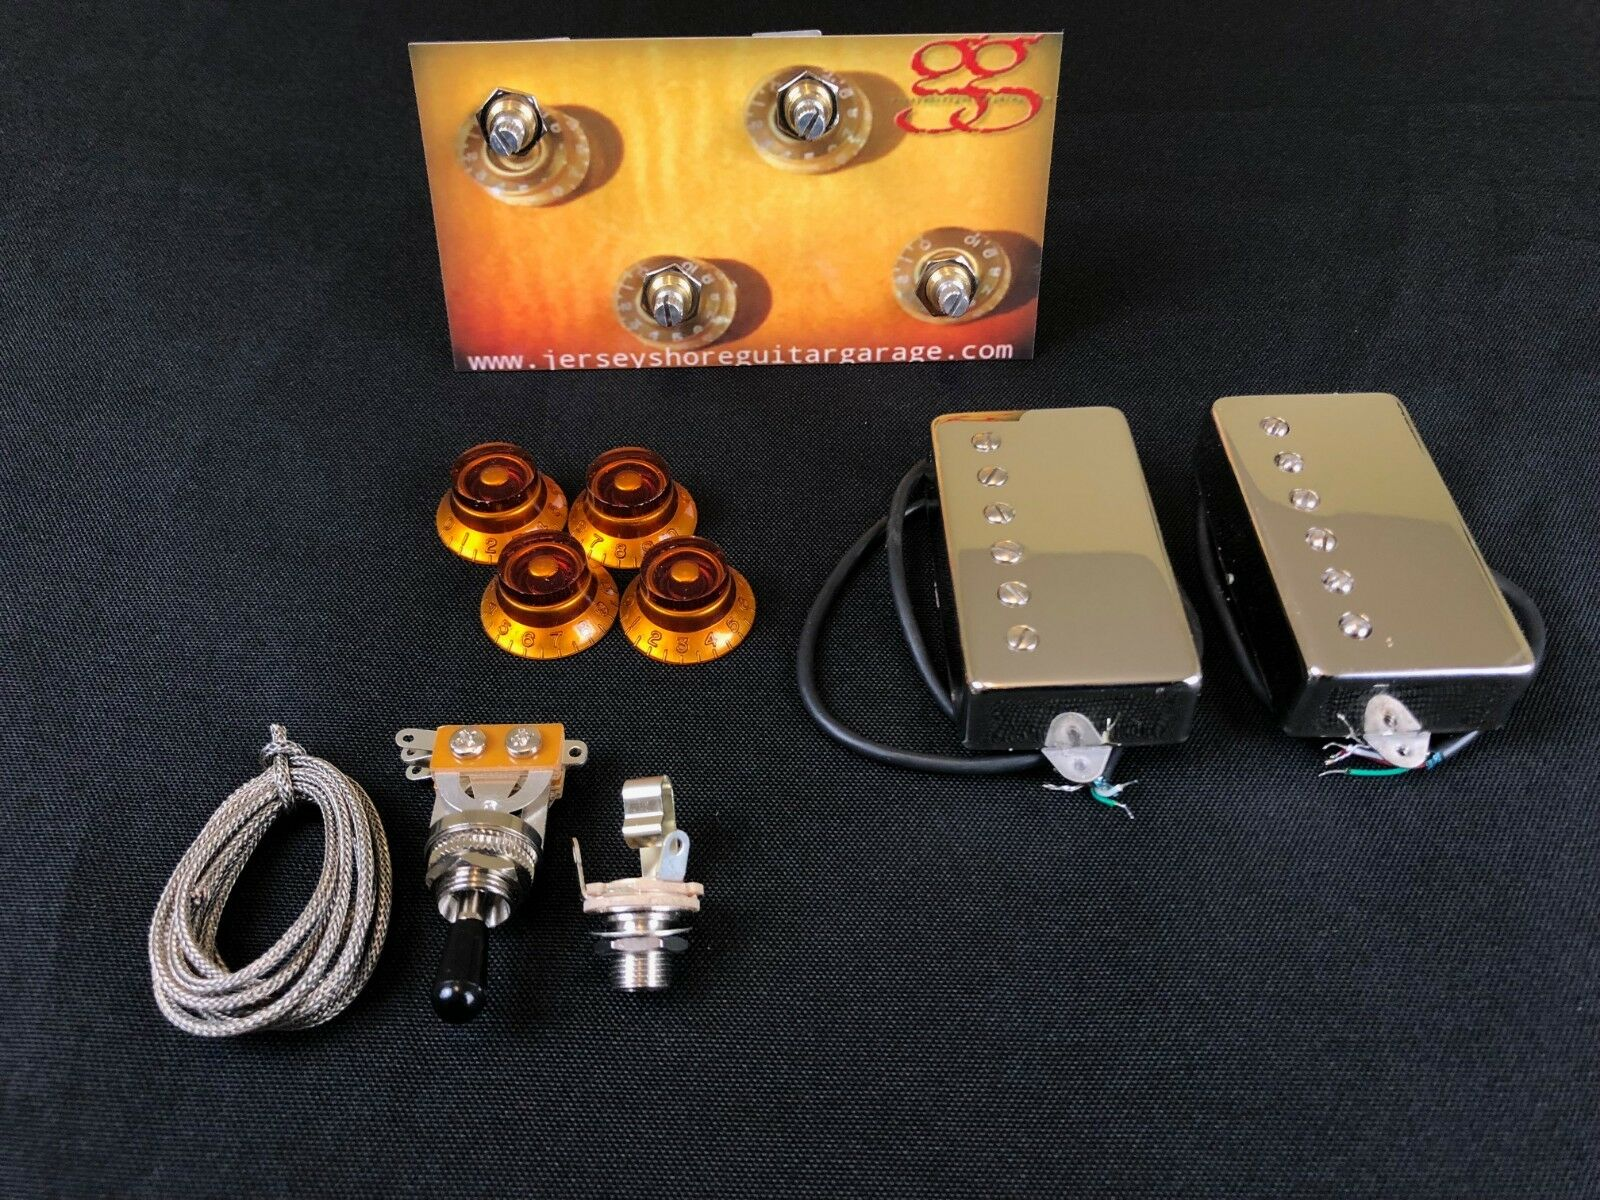 Astonishing Jimmy Page Push Pull Wiring Kit For Gibson Epiphone Epiphone Wiring Digital Resources Funapmognl